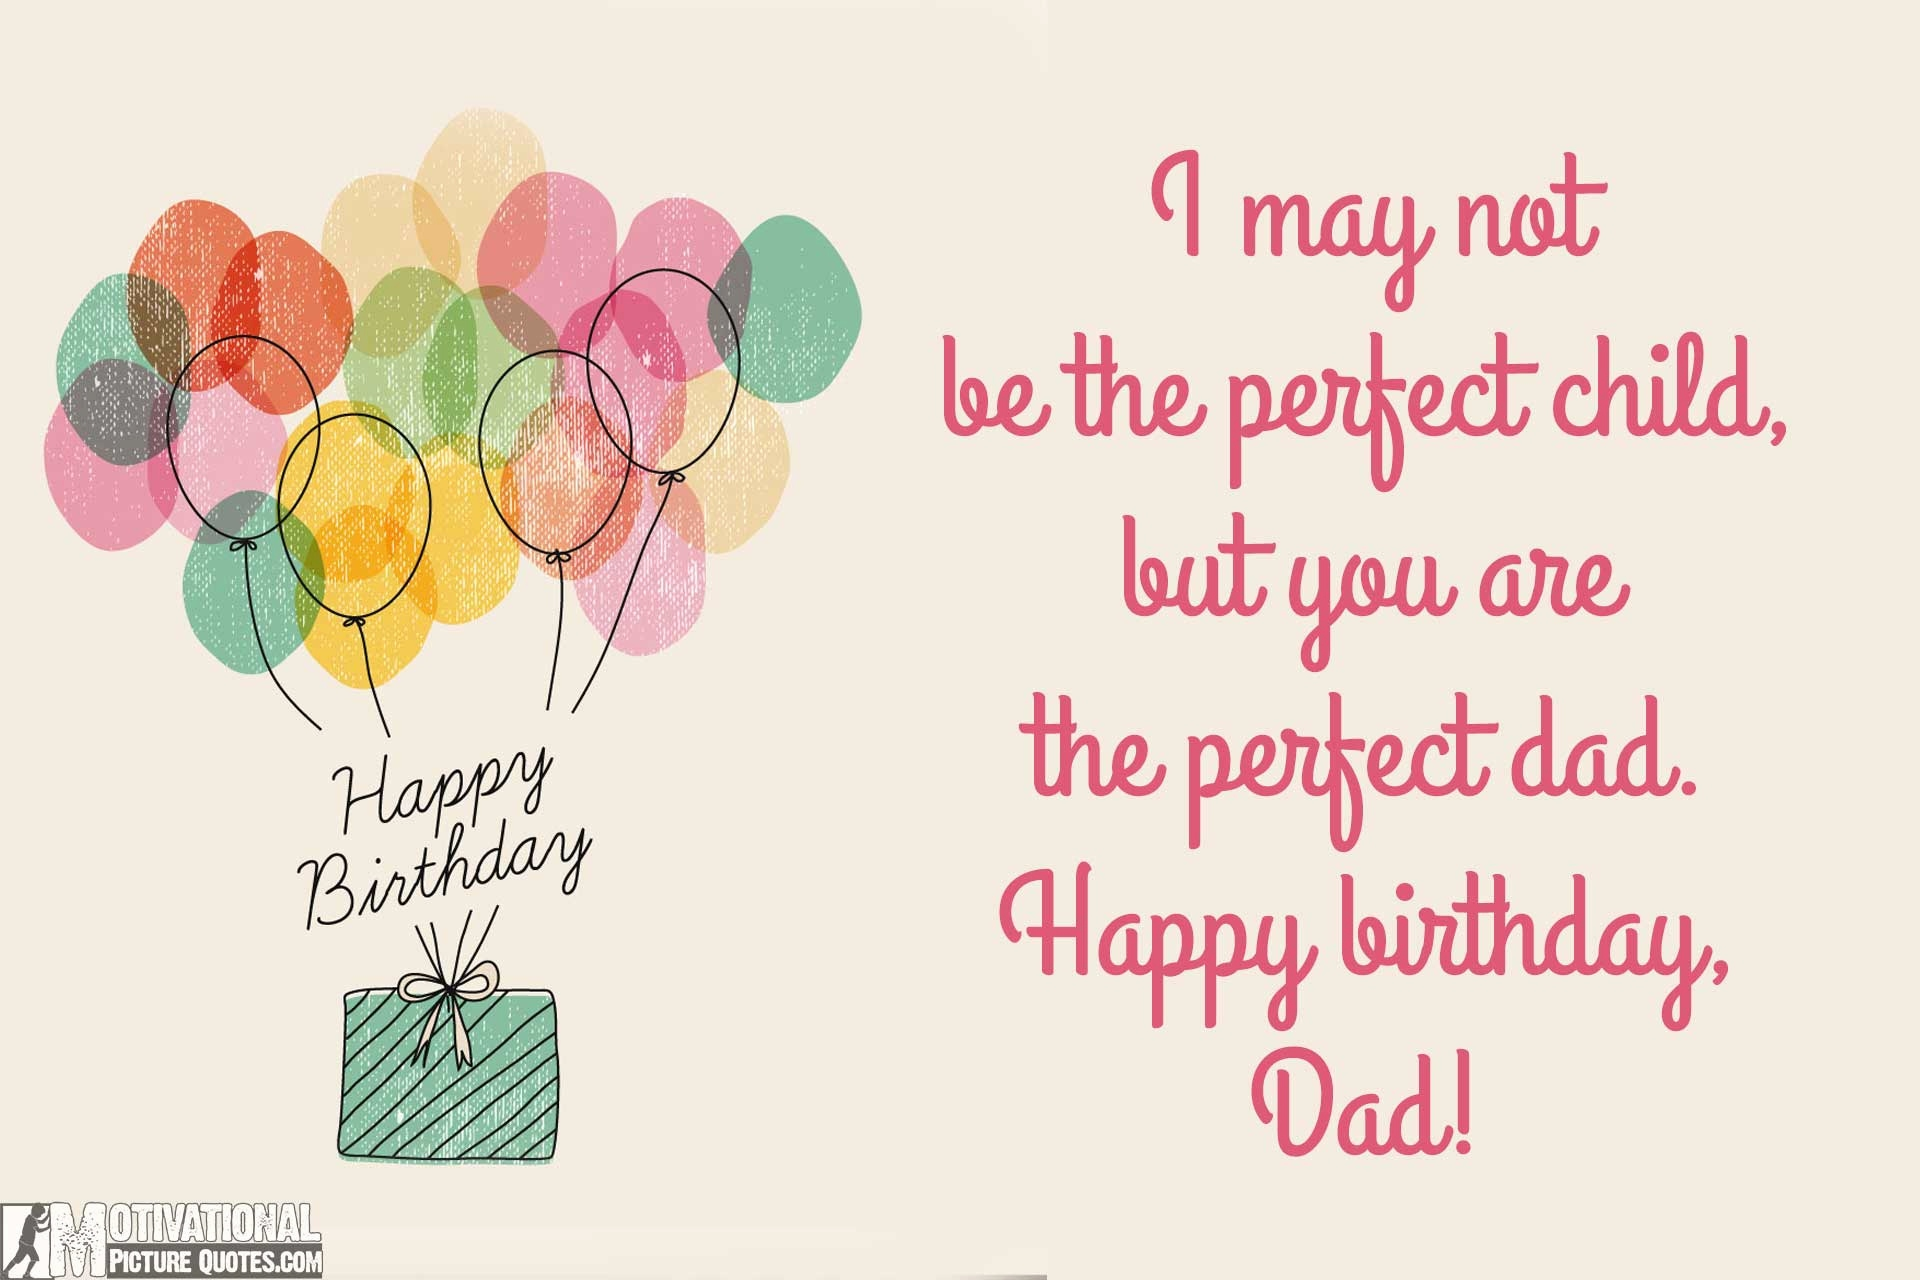 birthday card love messages ; love-birthday-card-messages-for-him-unique-35-inspirational-birthday-quotes-of-love-birthday-card-messages-for-him